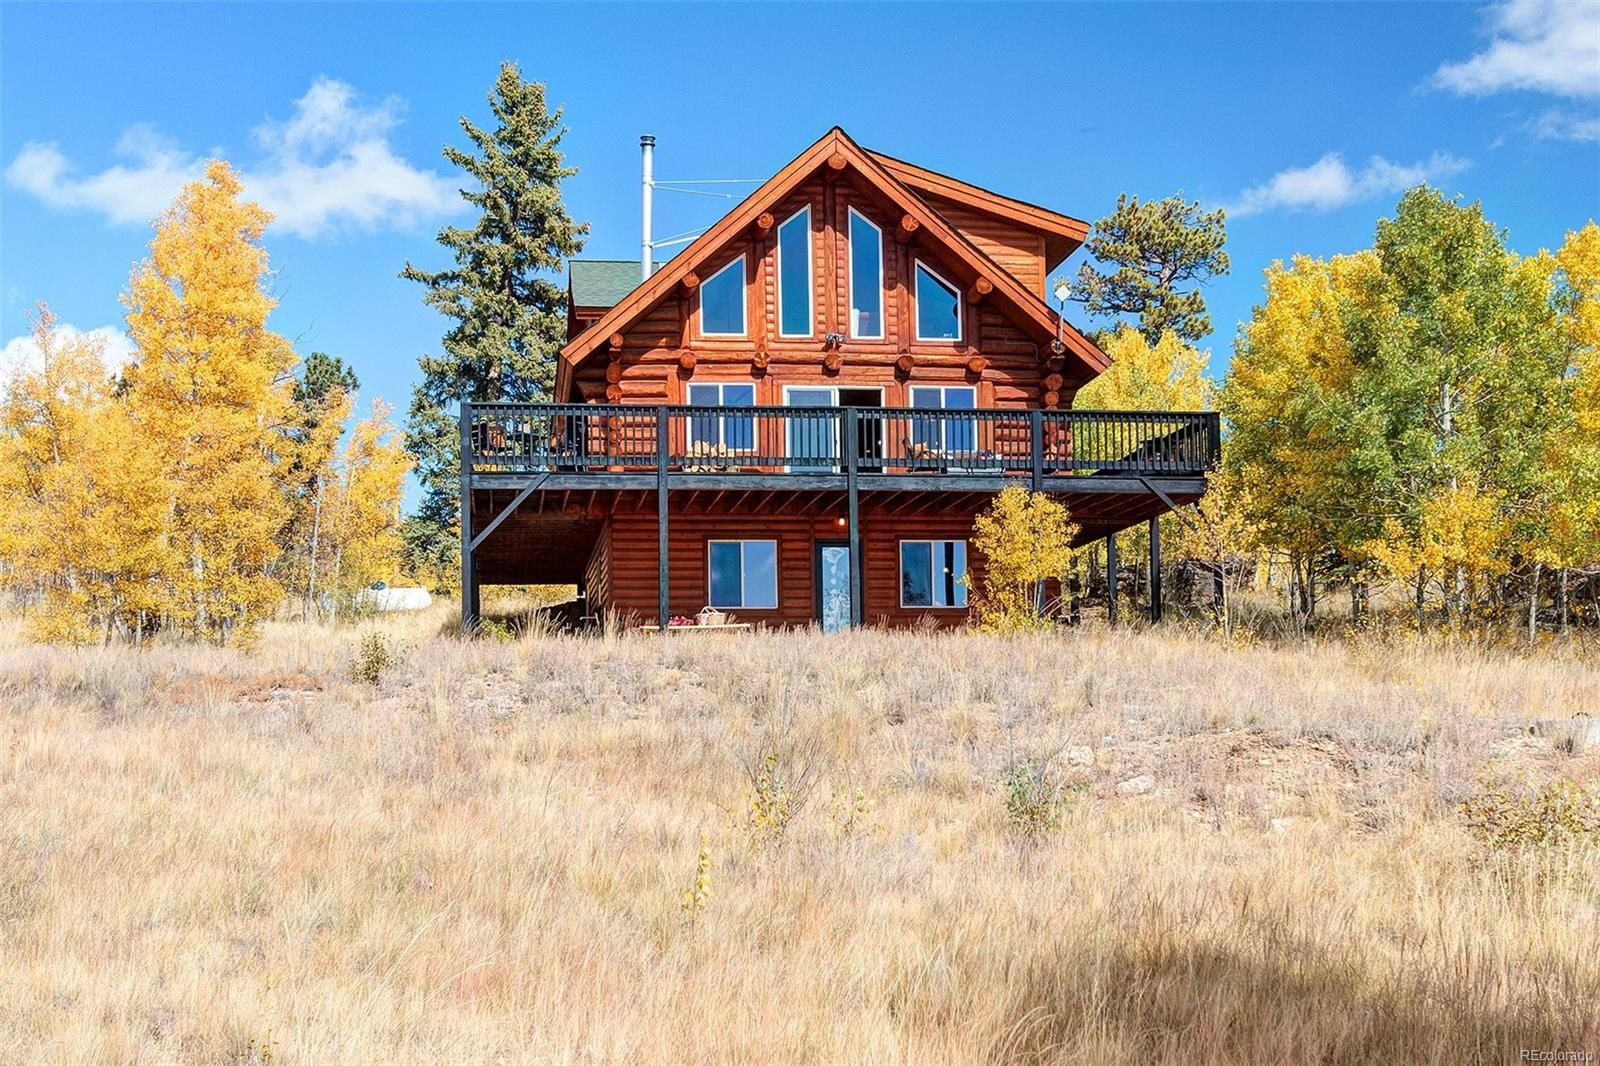 MLS# 8358796 - 32 - 230 Ignacio Way, Como, CO 80456